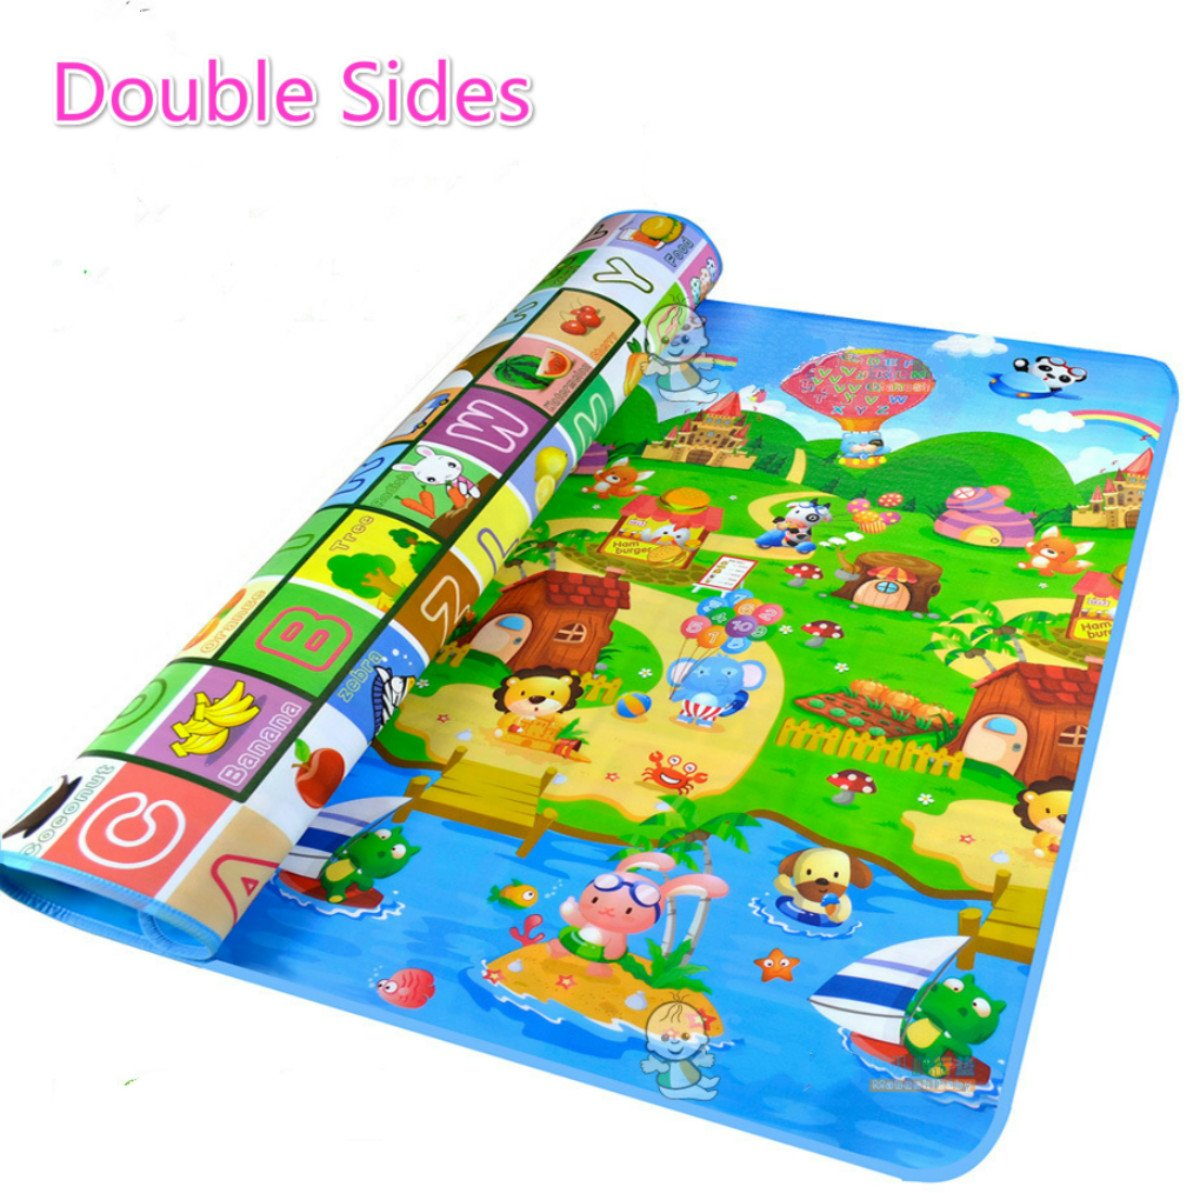 Sytian® 180*120*0.5cm Middle Size & Non-slip & Waterproof & Eco-friendly & Double Sides Baby Care Play Mat / Kids Crawling Mat / Playing Pad / Game Mat for Indoor and Outdoor Use (Fruit Alphabet & Farm)